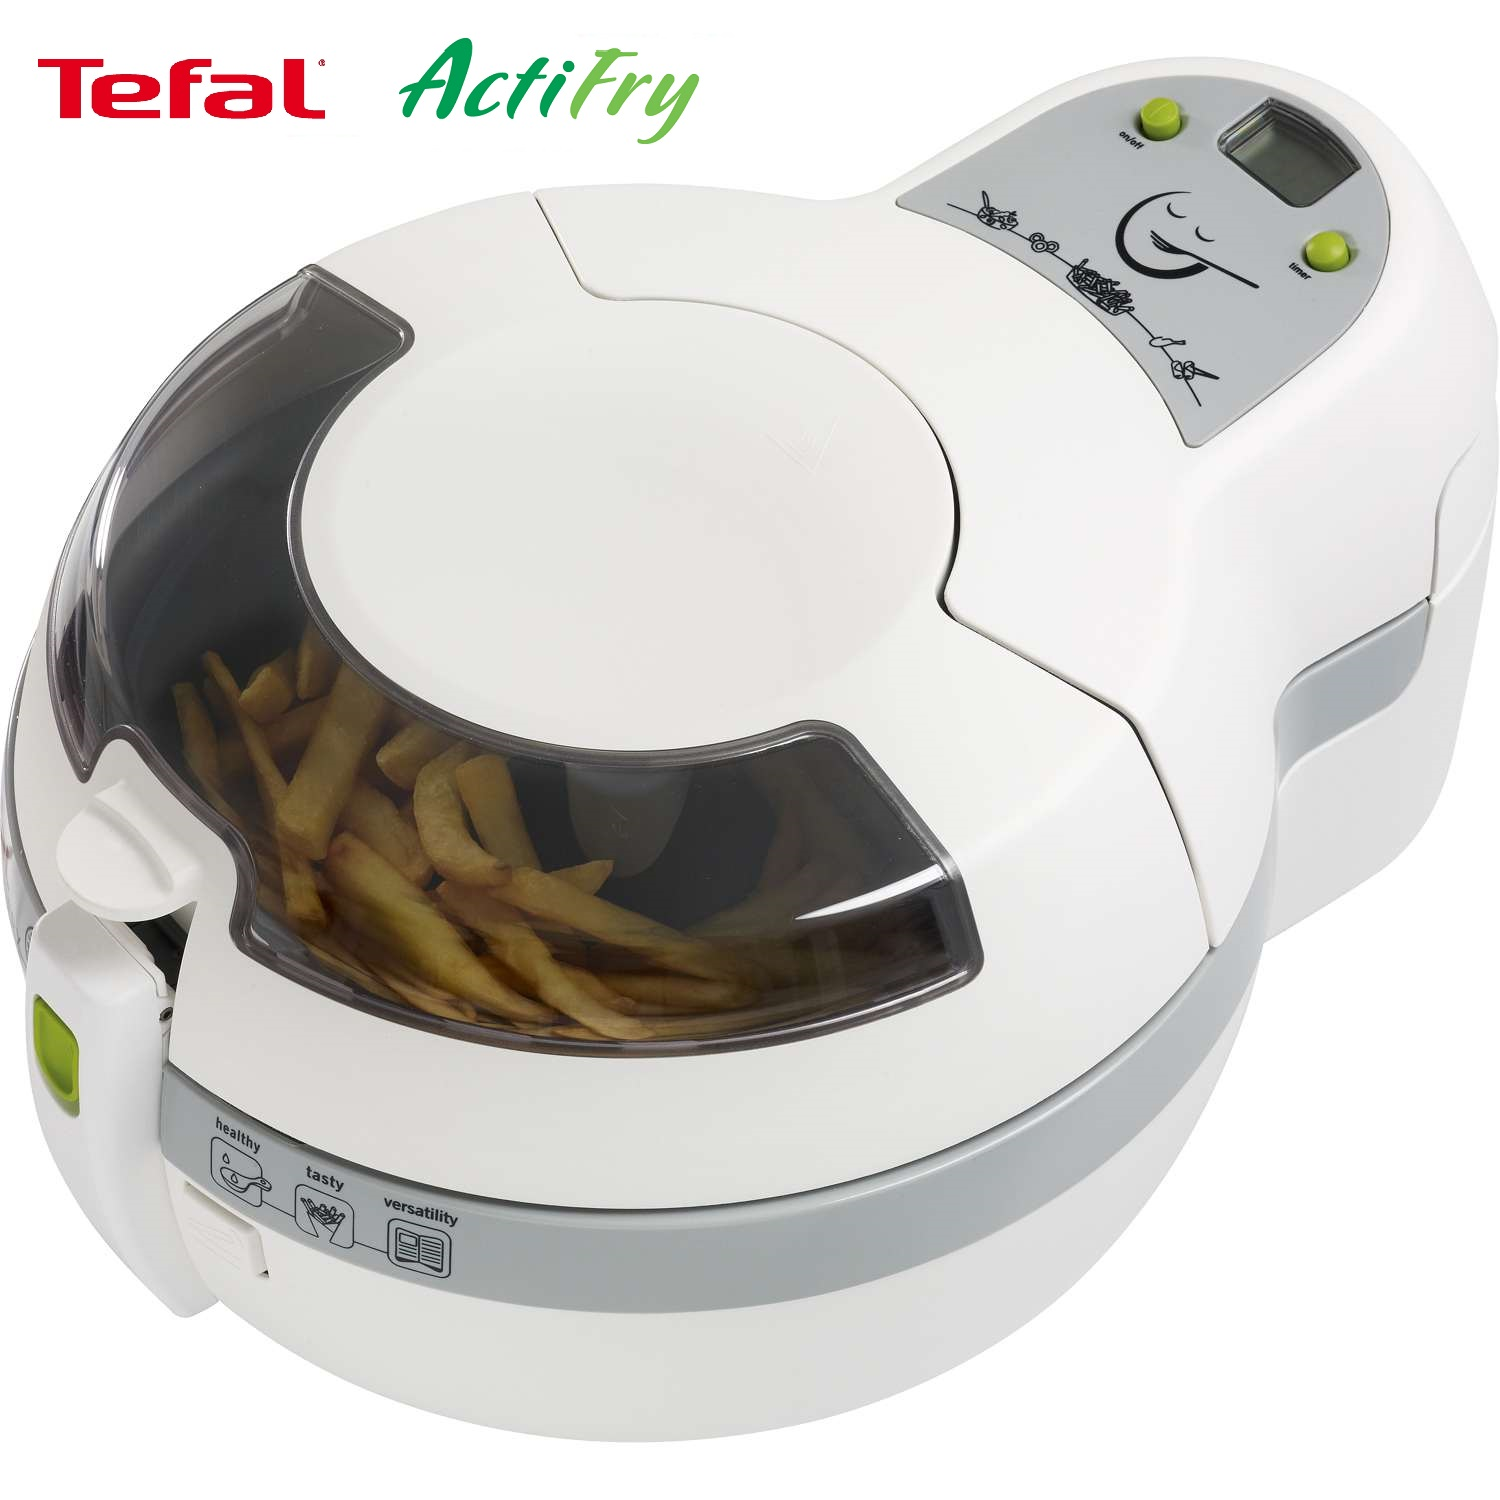 tefal actifry health cooker review